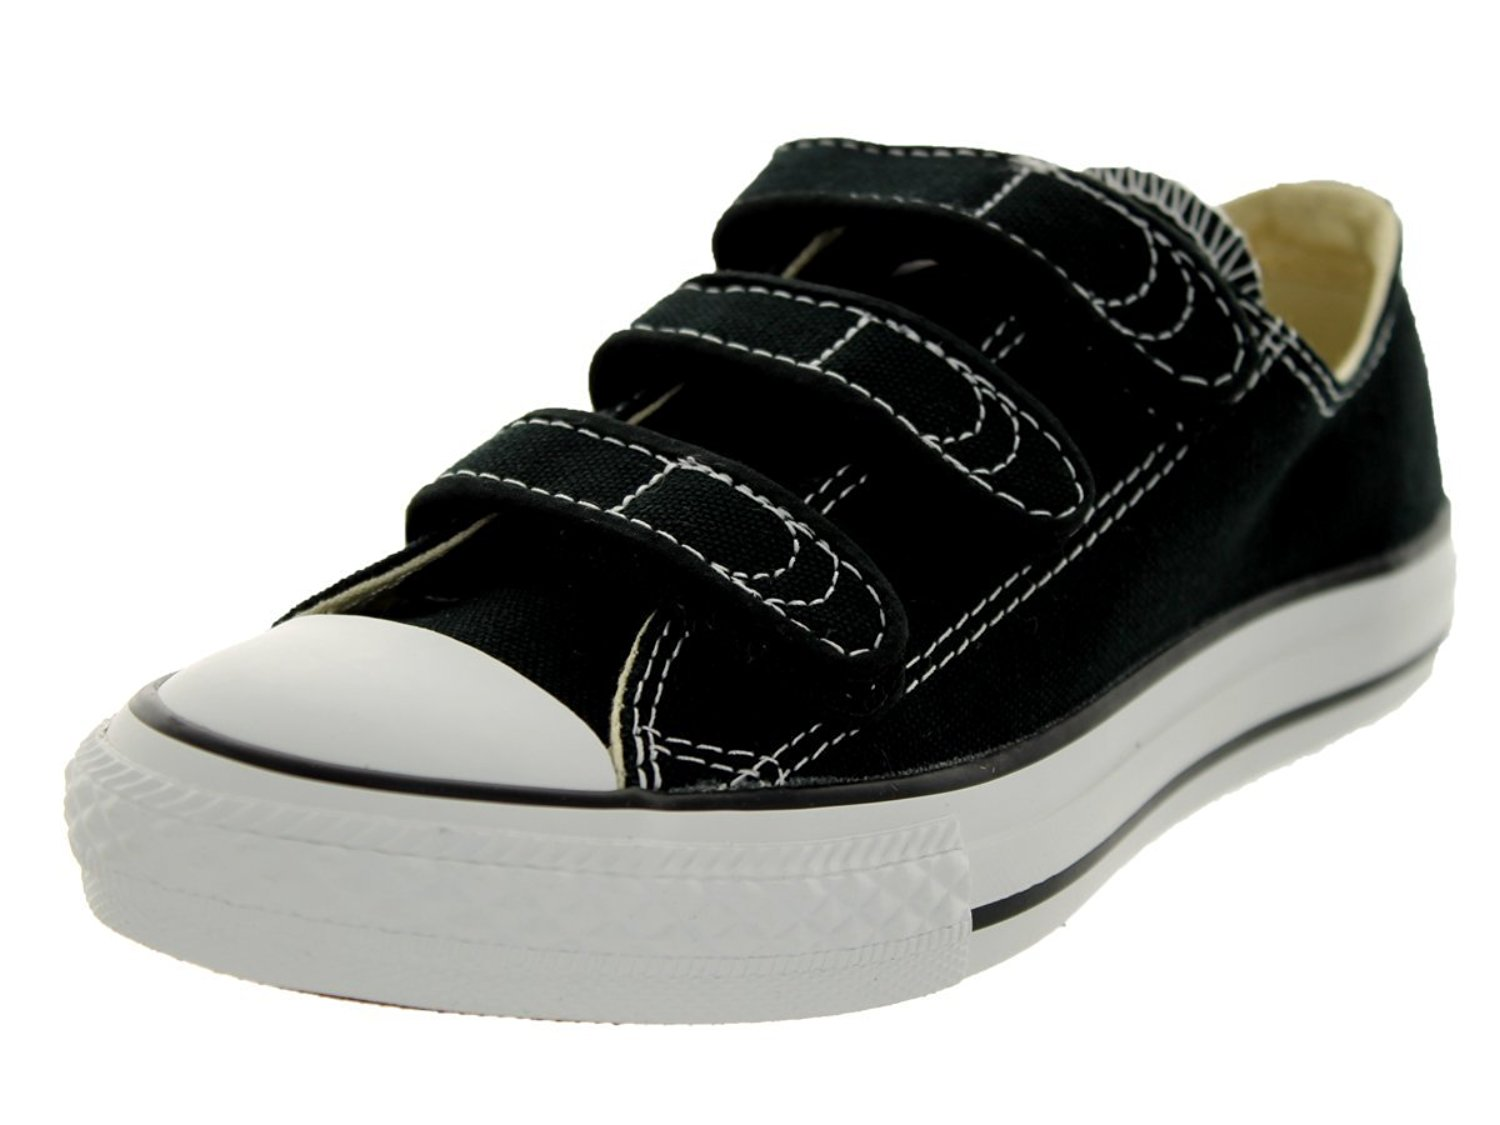 f8ce08a2cd632 Cheap Toddler Chuck Taylors, find Toddler Chuck Taylors deals on ...